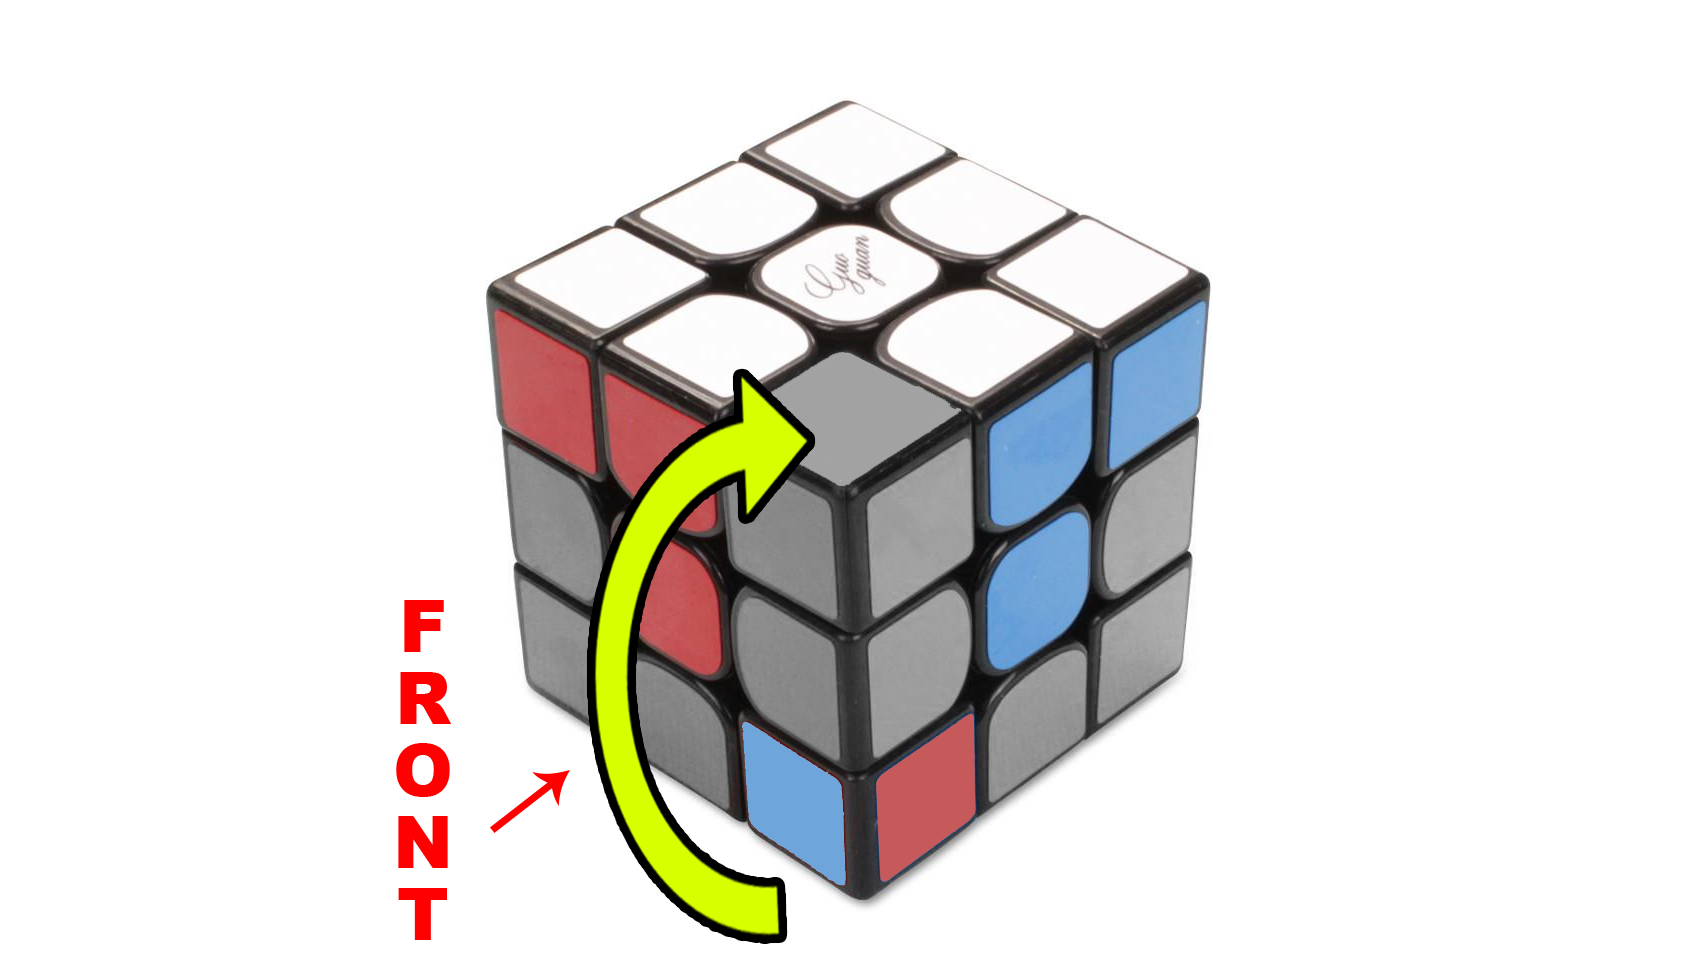 How to solve a Rubik's 3x3 - Step 2 - The Corners - Step 2c